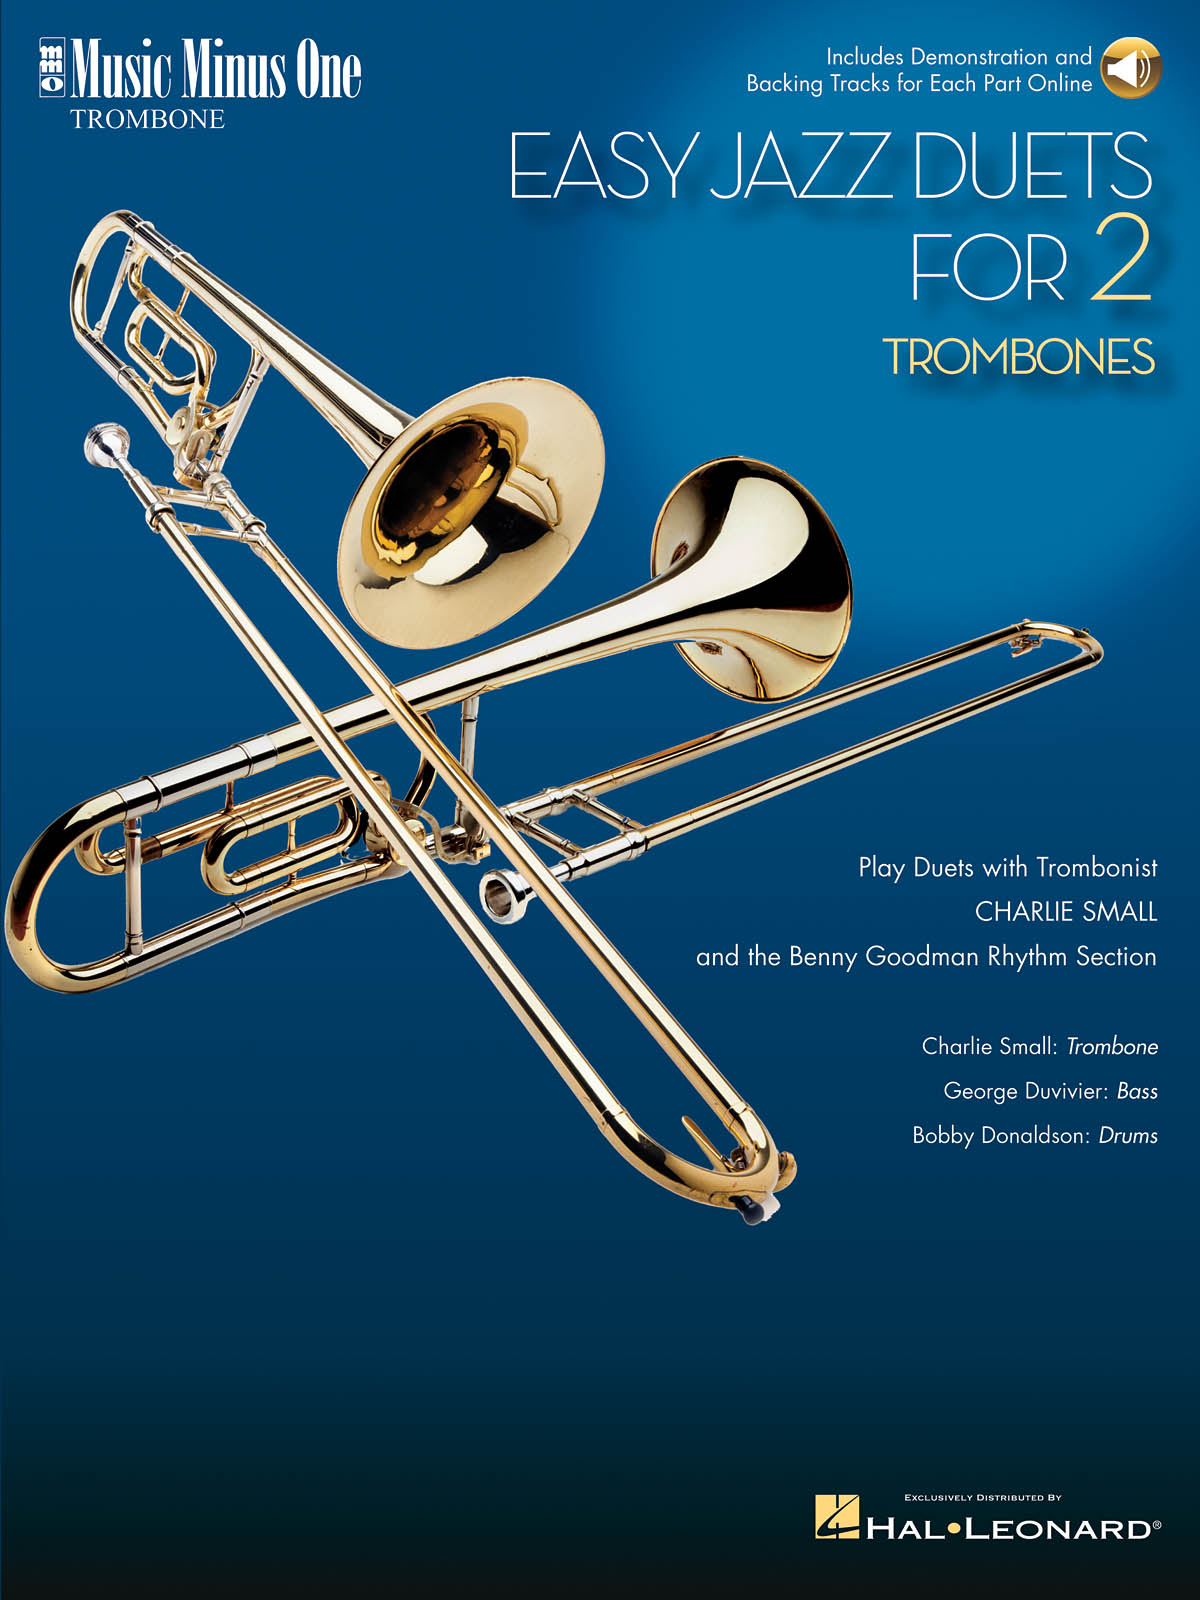 Easy Jazz Duets for 2 Trombones and Rhythm Section: Chamber Ensemble